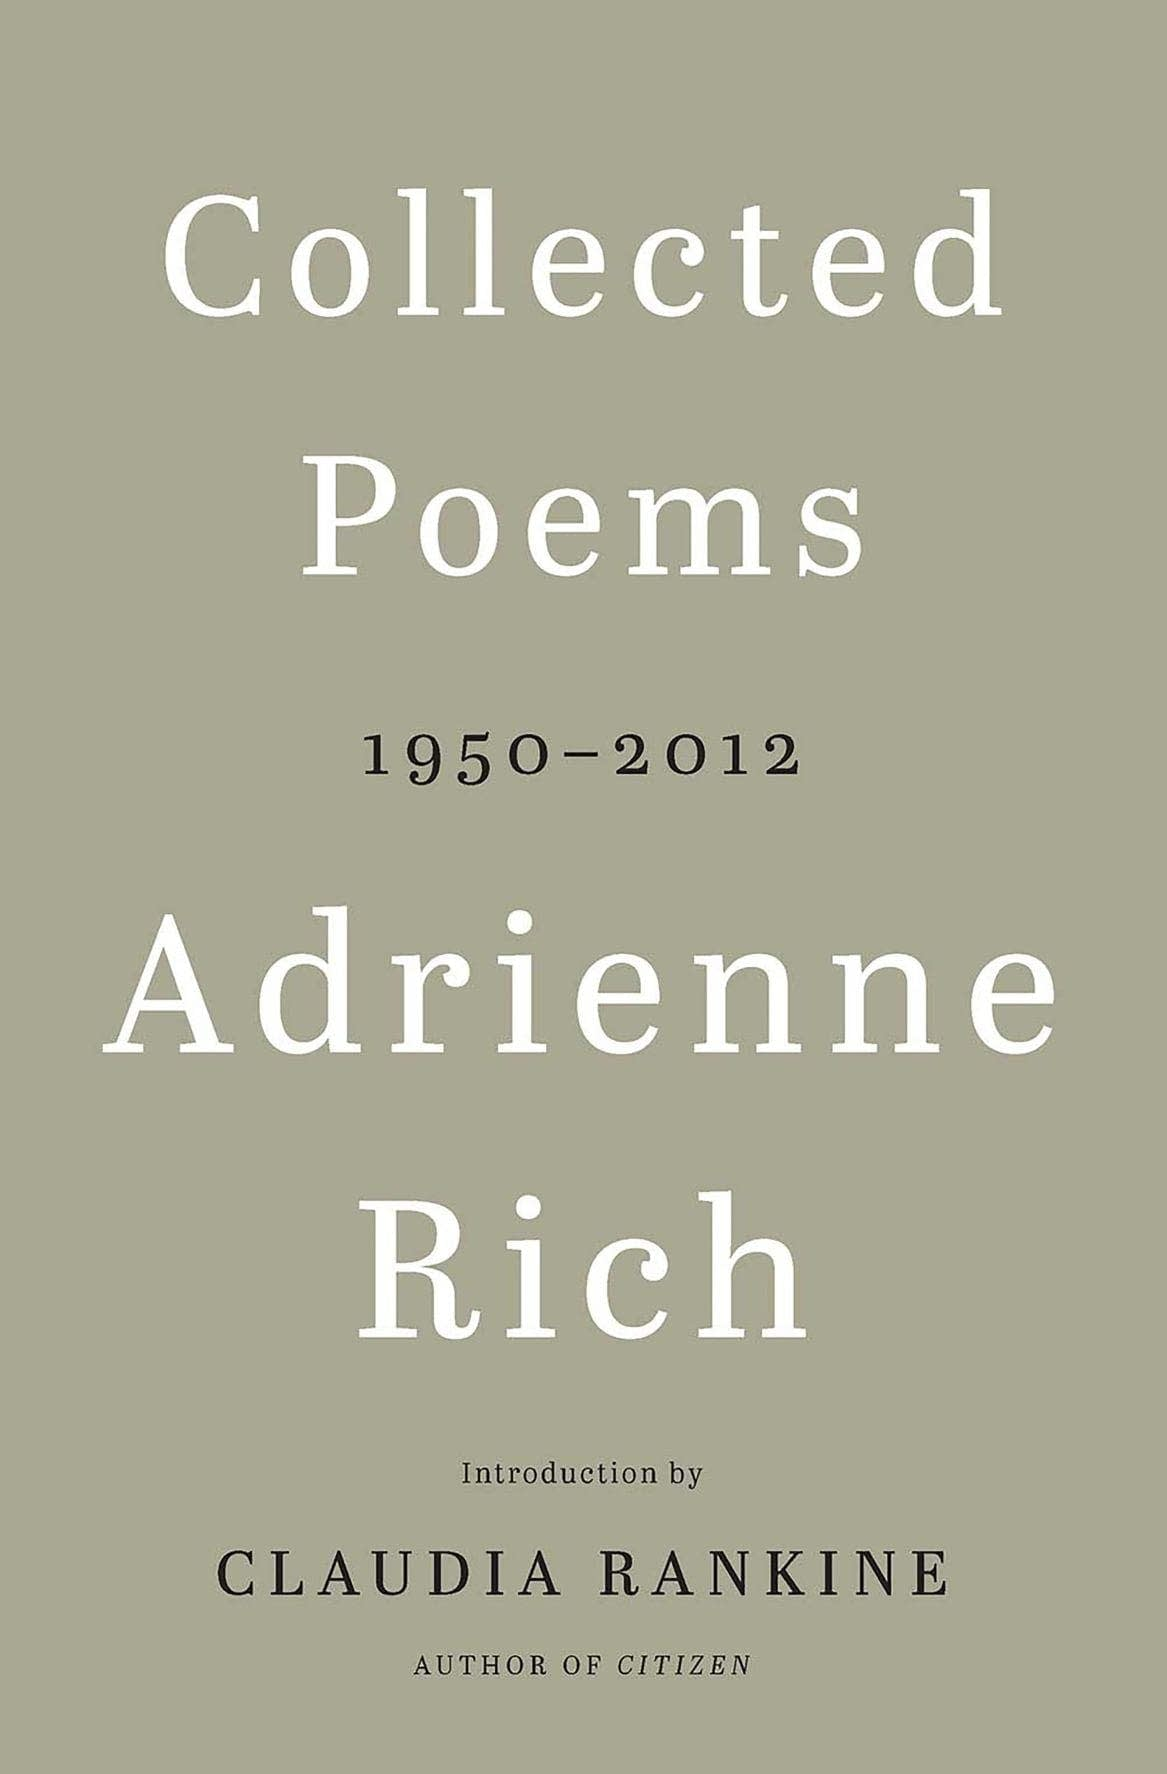 'Collected Poems' by Adrienne Rich